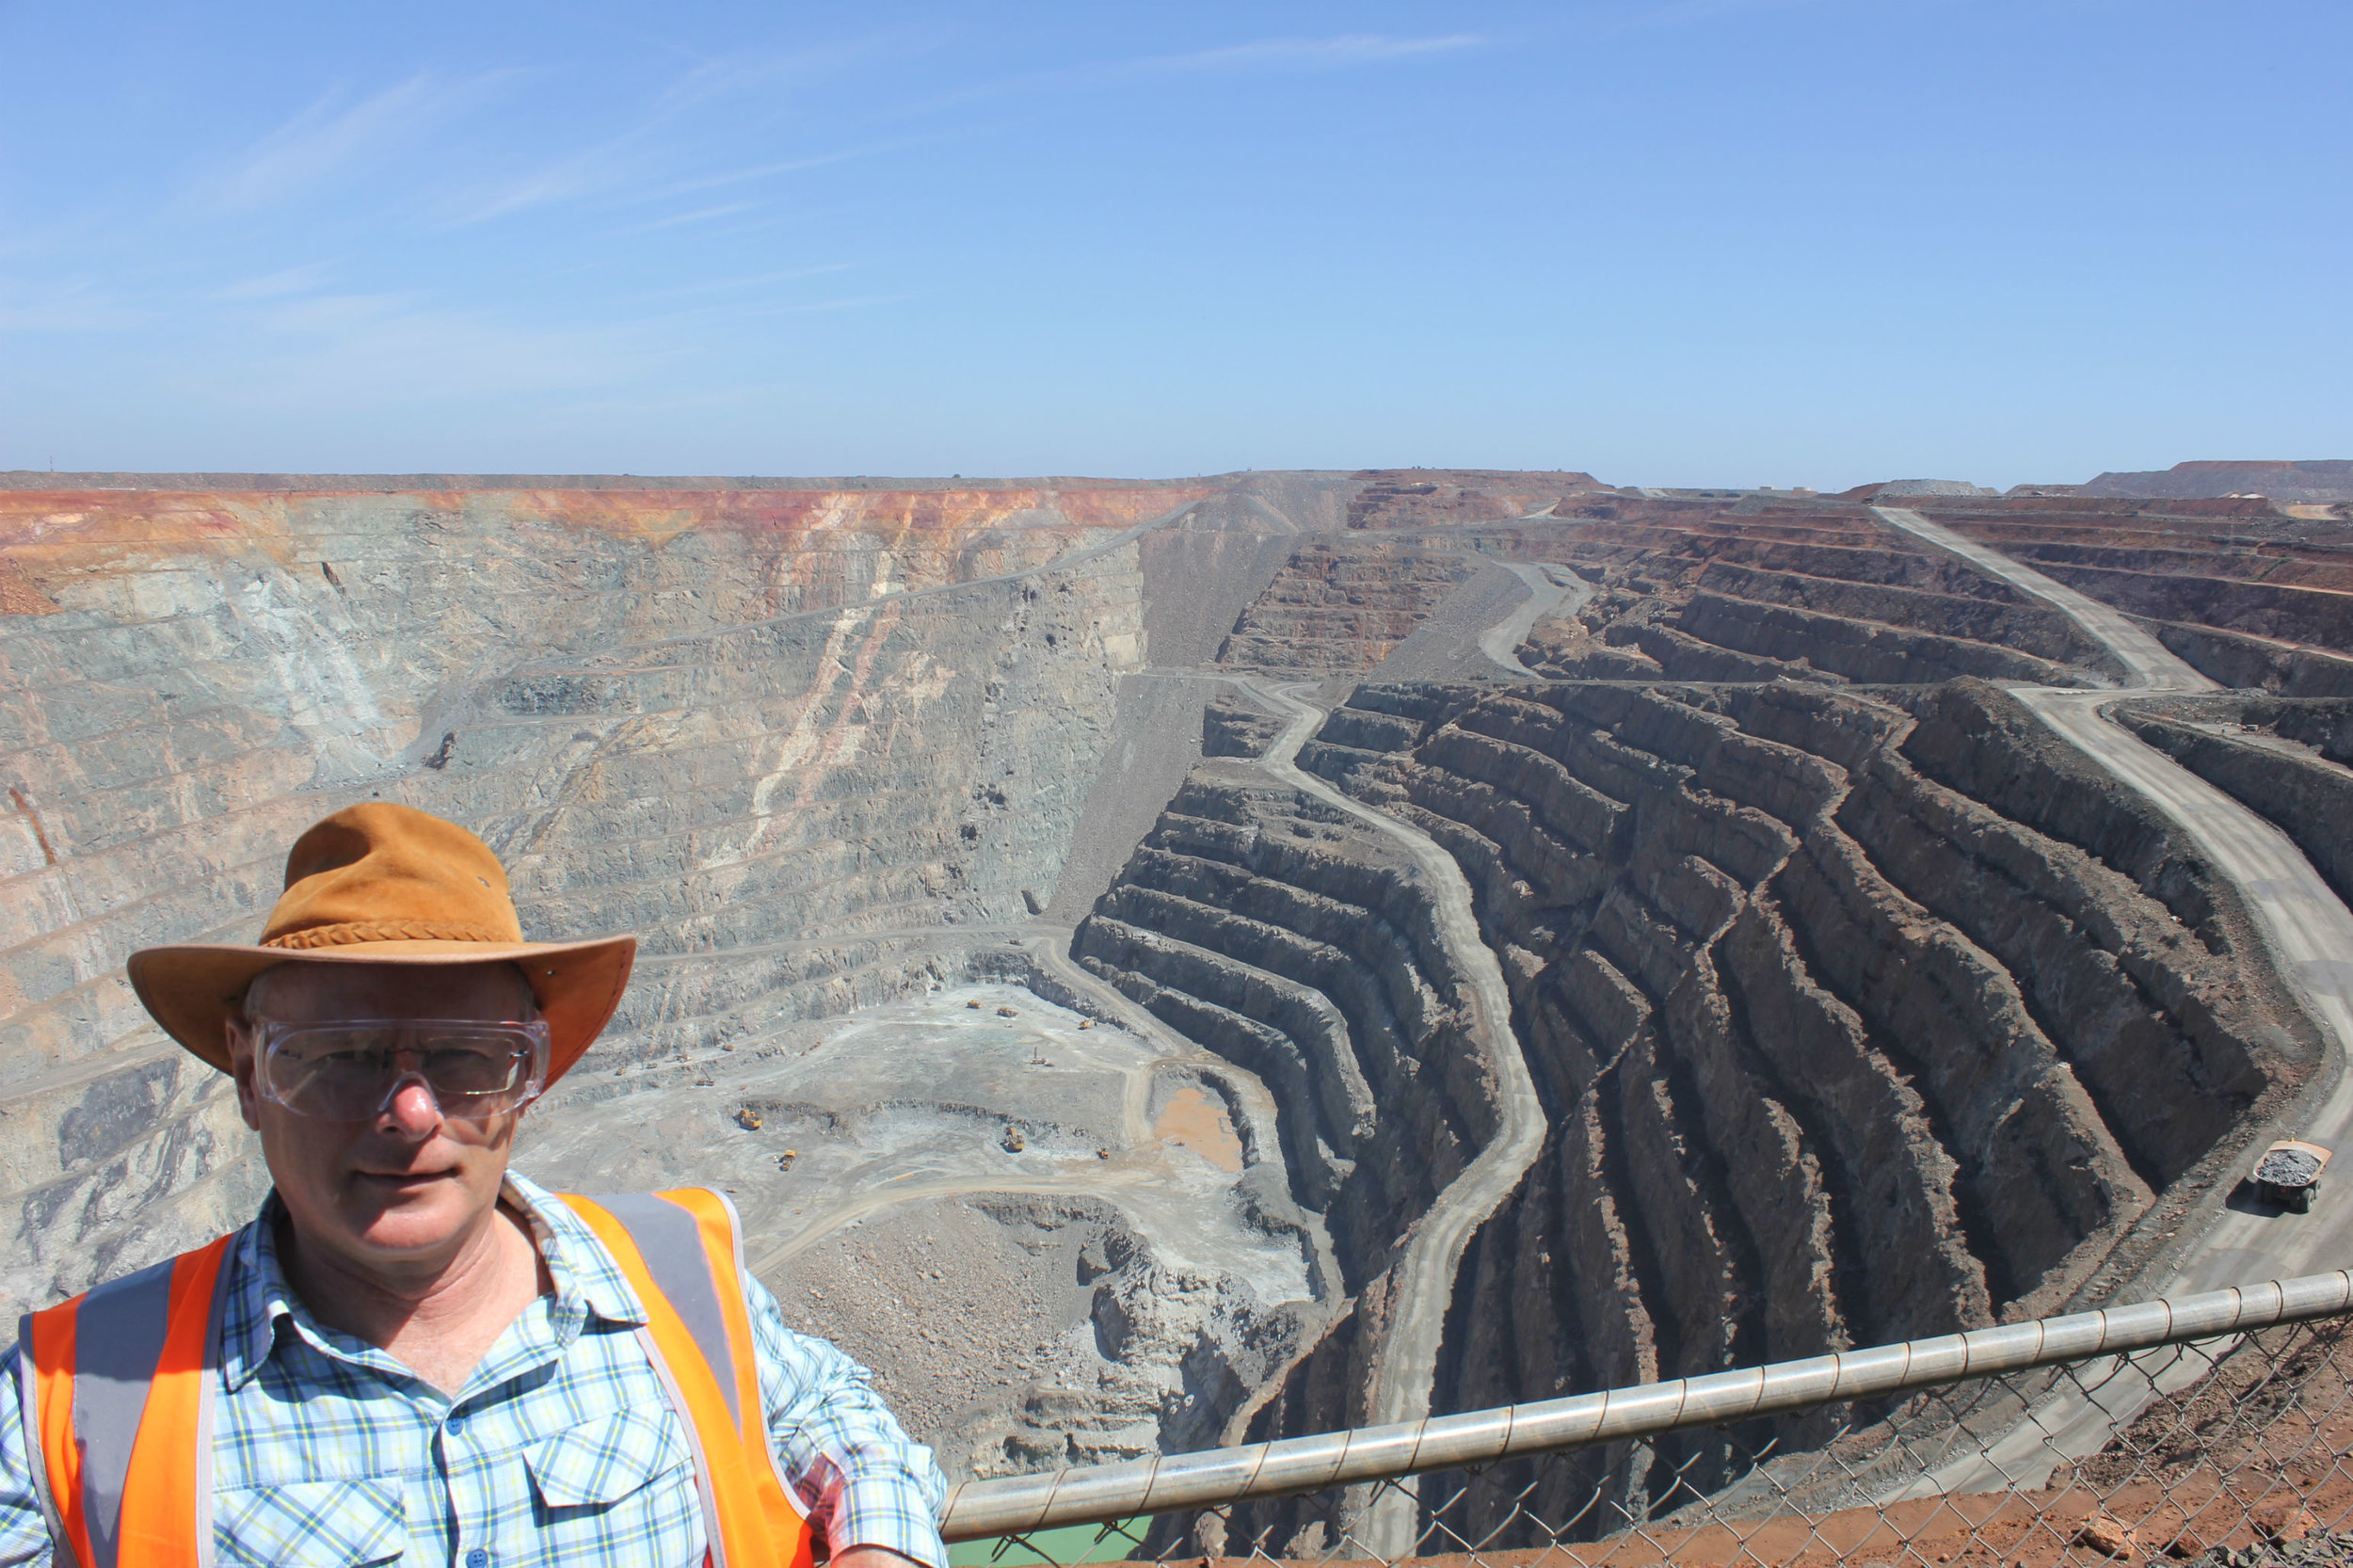 On the rim of the 'Super Pit'.